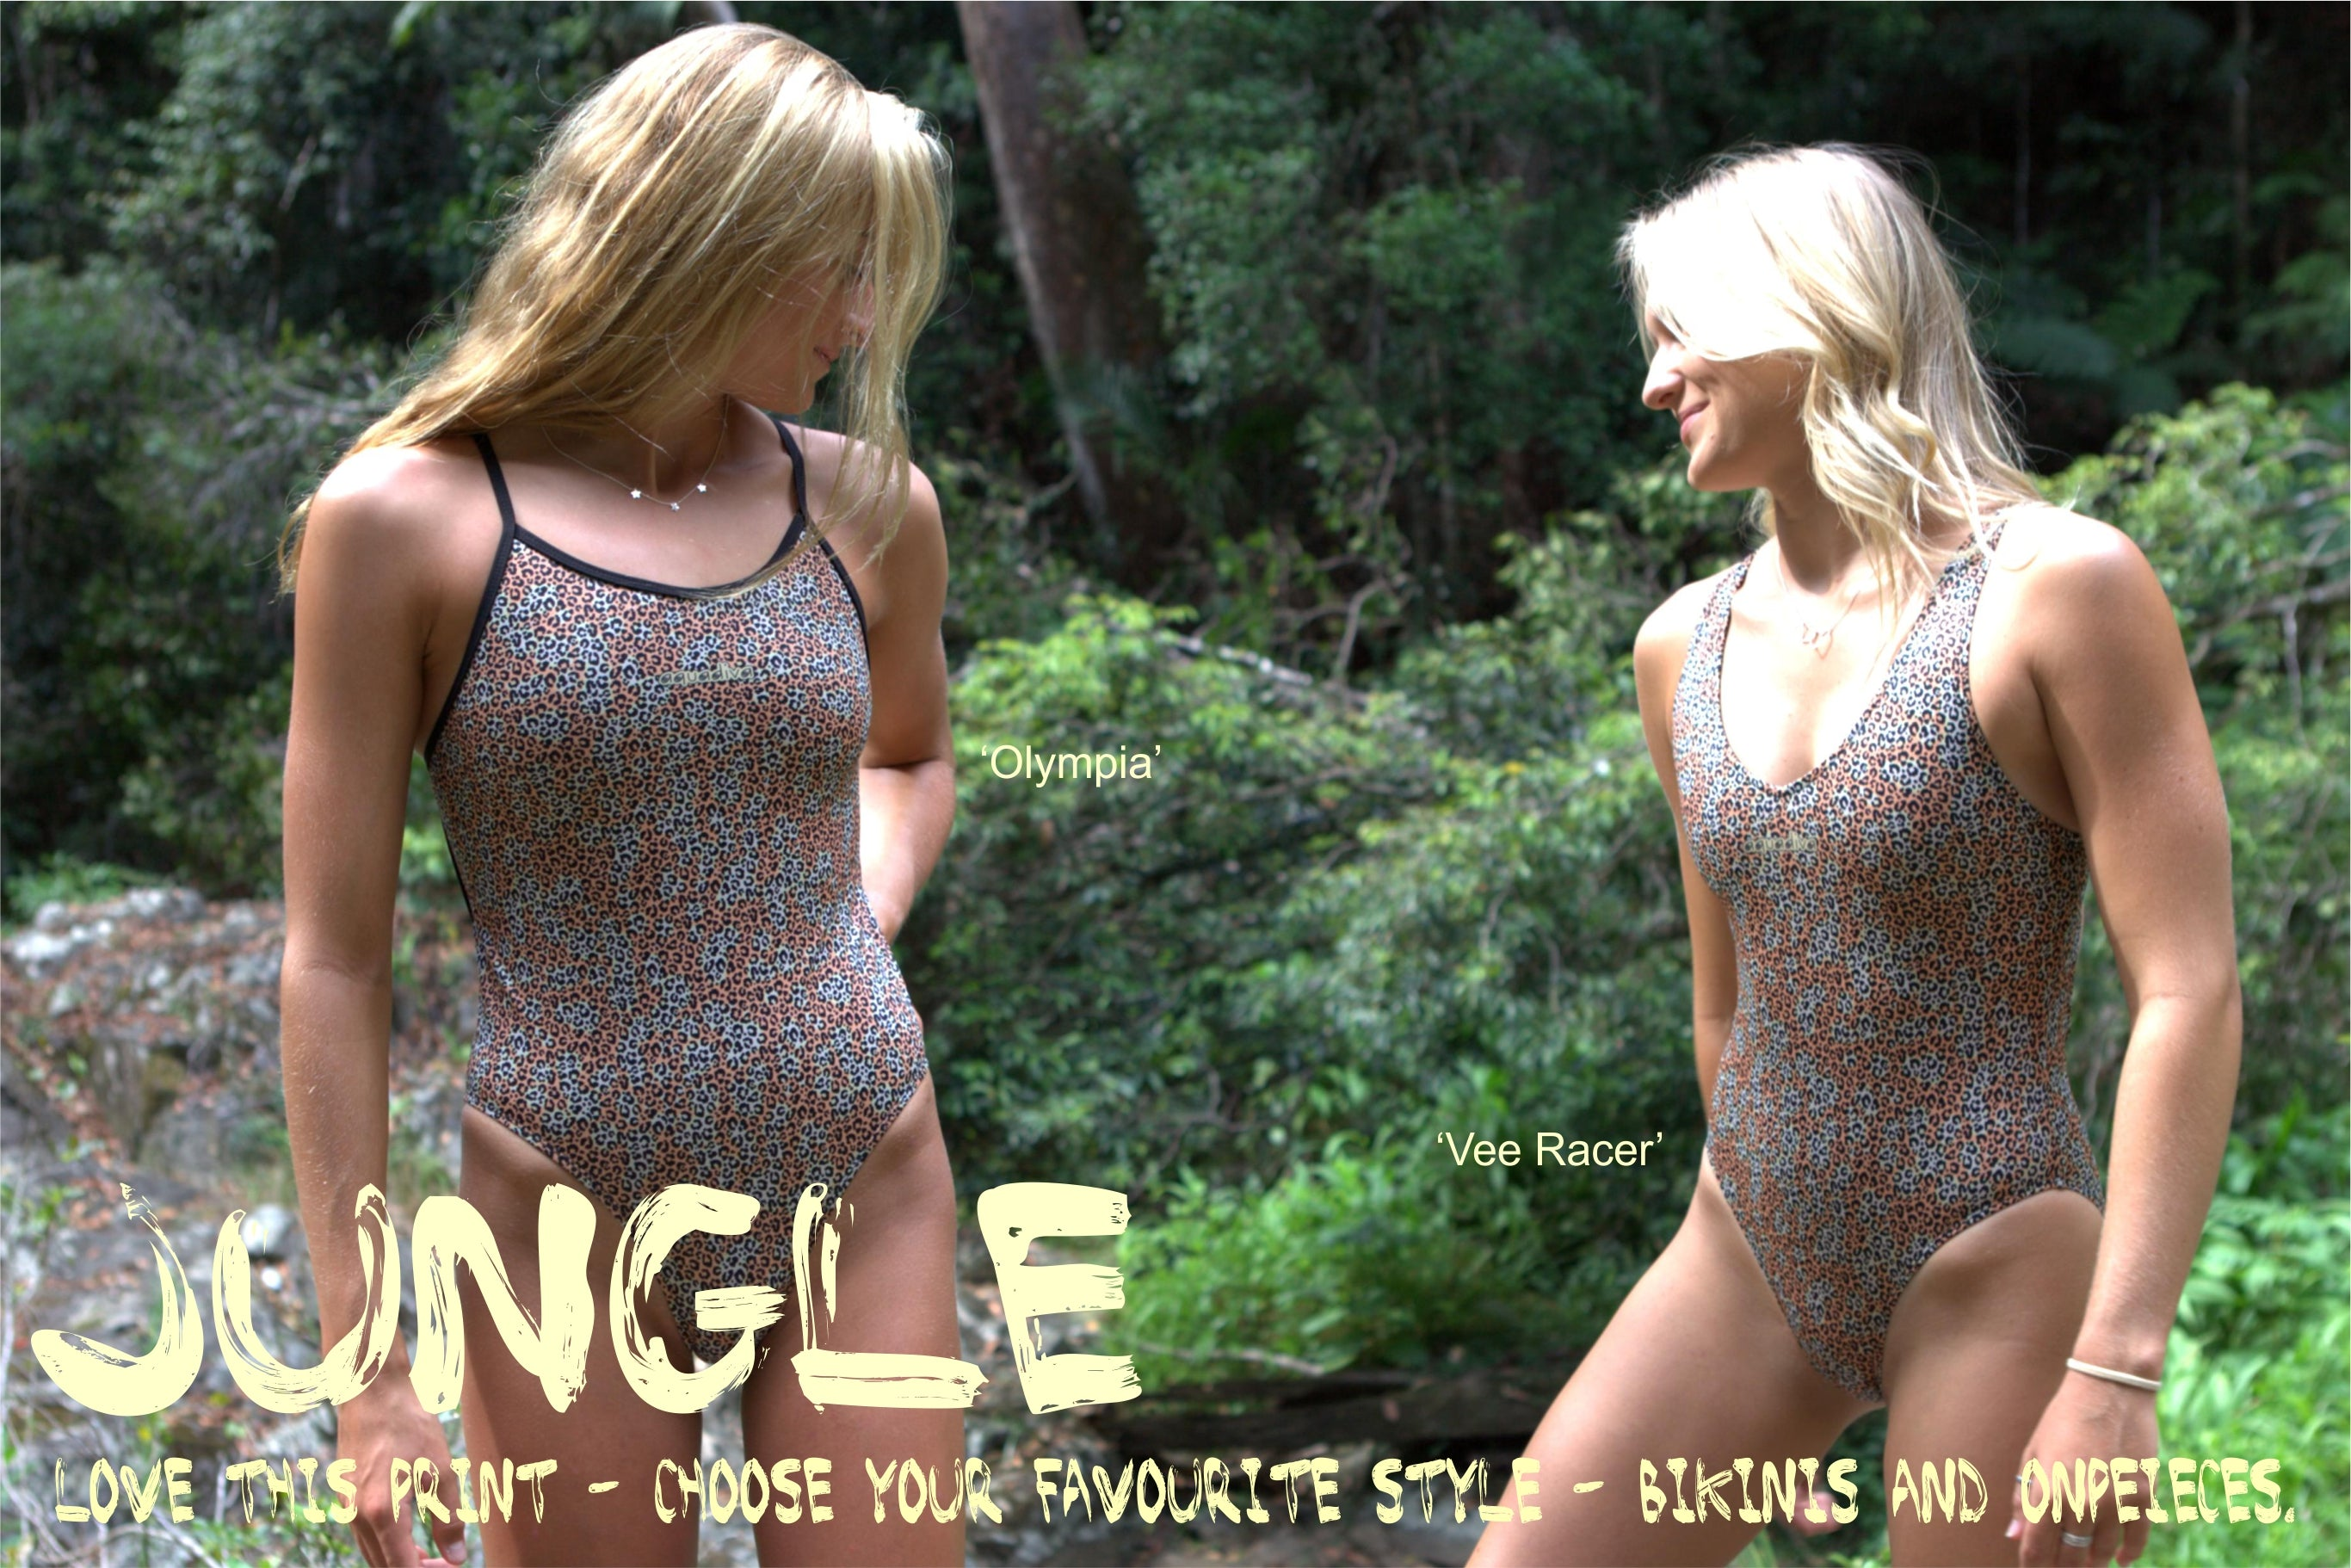 Jungle - all styles in BIKINIS and ONEPIECES